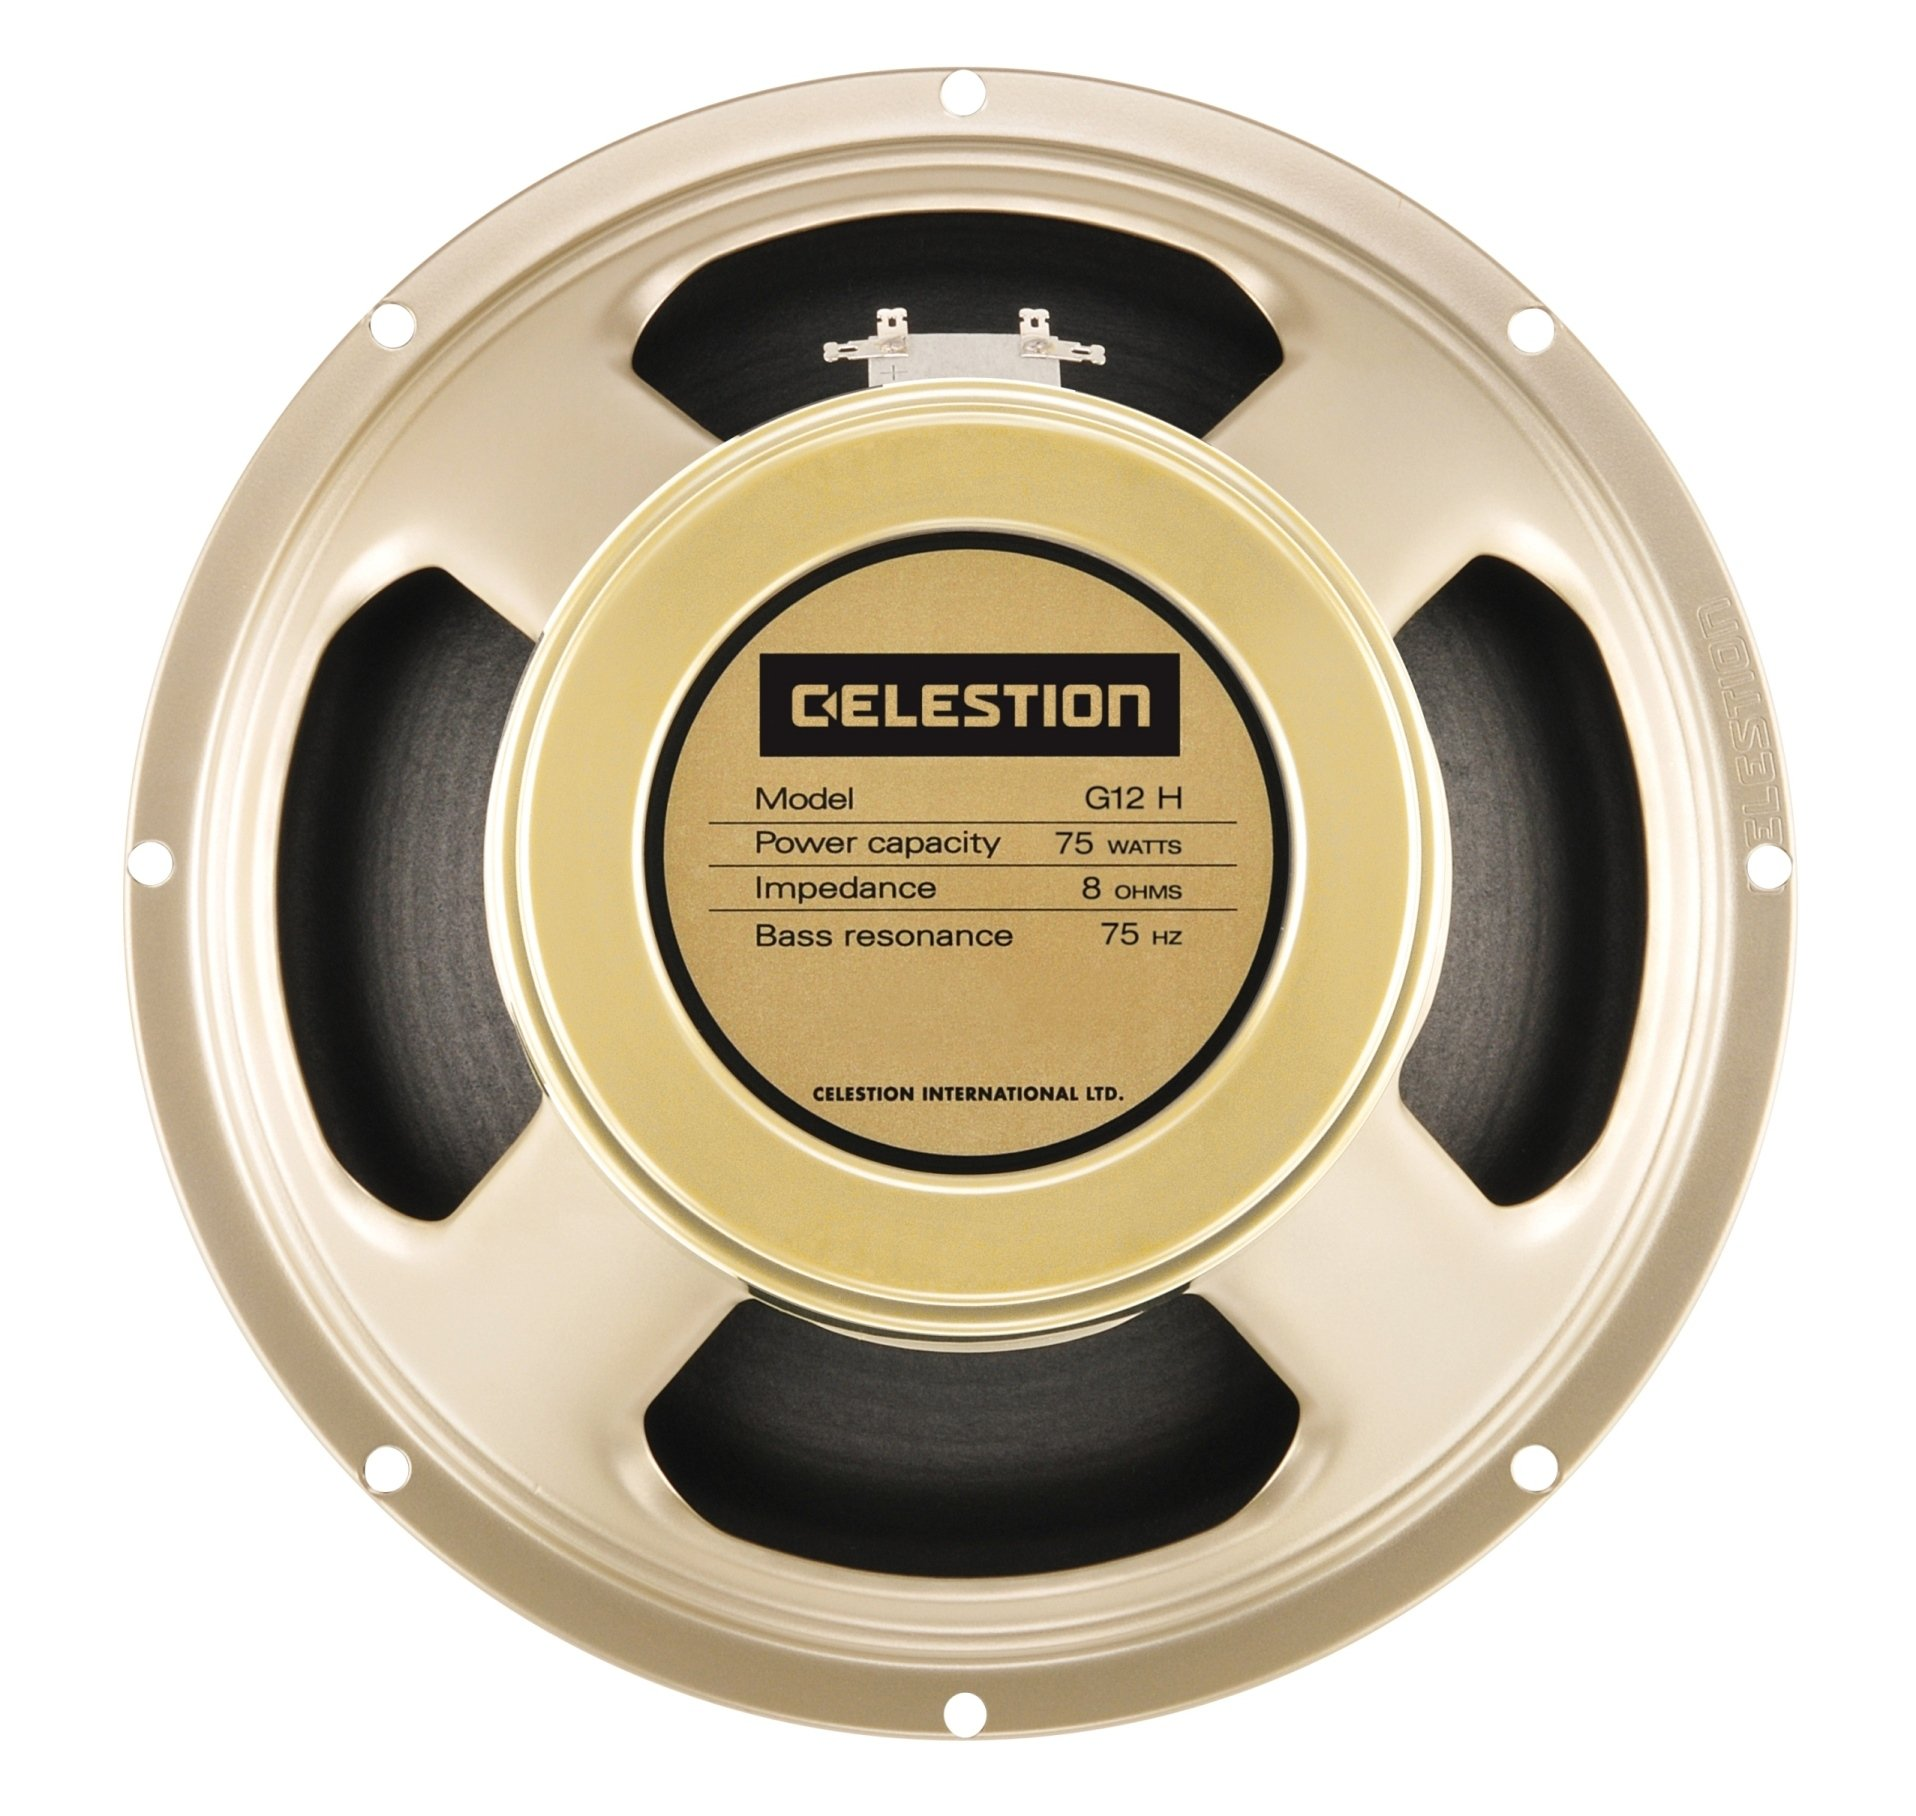 CELESTION G12H-75 Creamback 8-Ohm 12-Inch 75-Watt Guitar Speaker by CELESTION